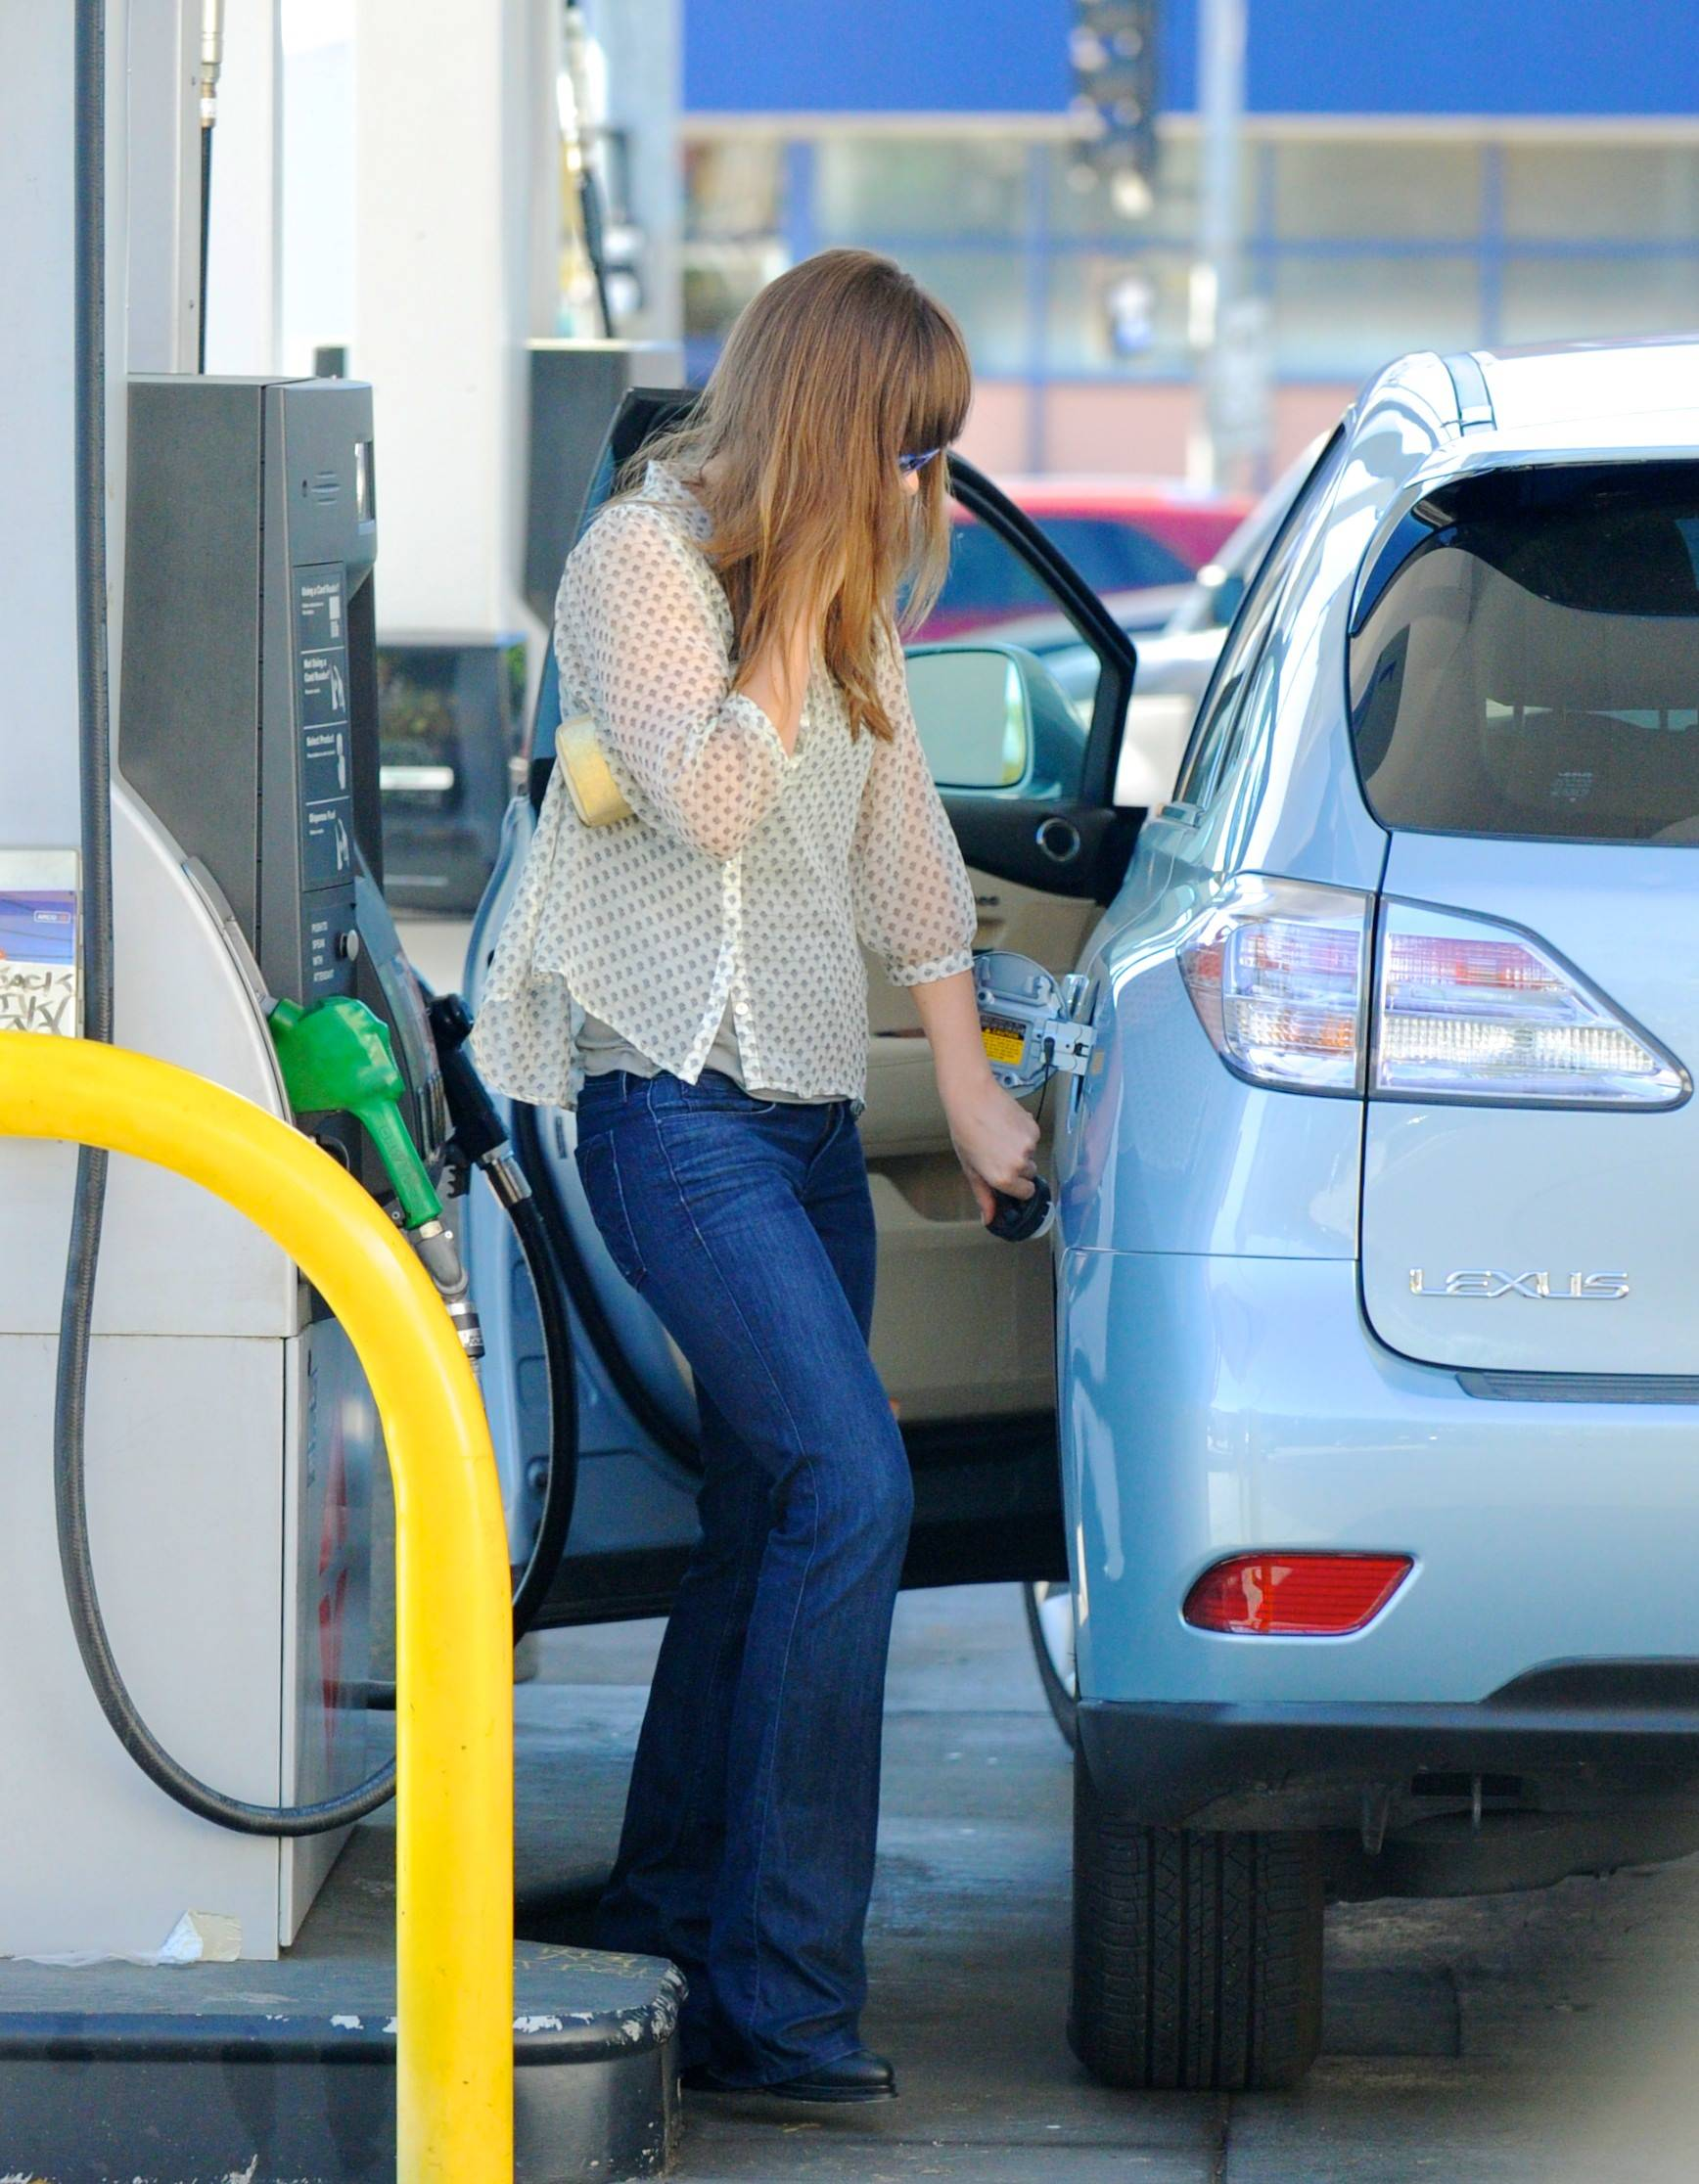 671626370_Olivia_Wilde_at_a_Gas_Station_in_LA_March_31_2011_03_122_78lo.jpg